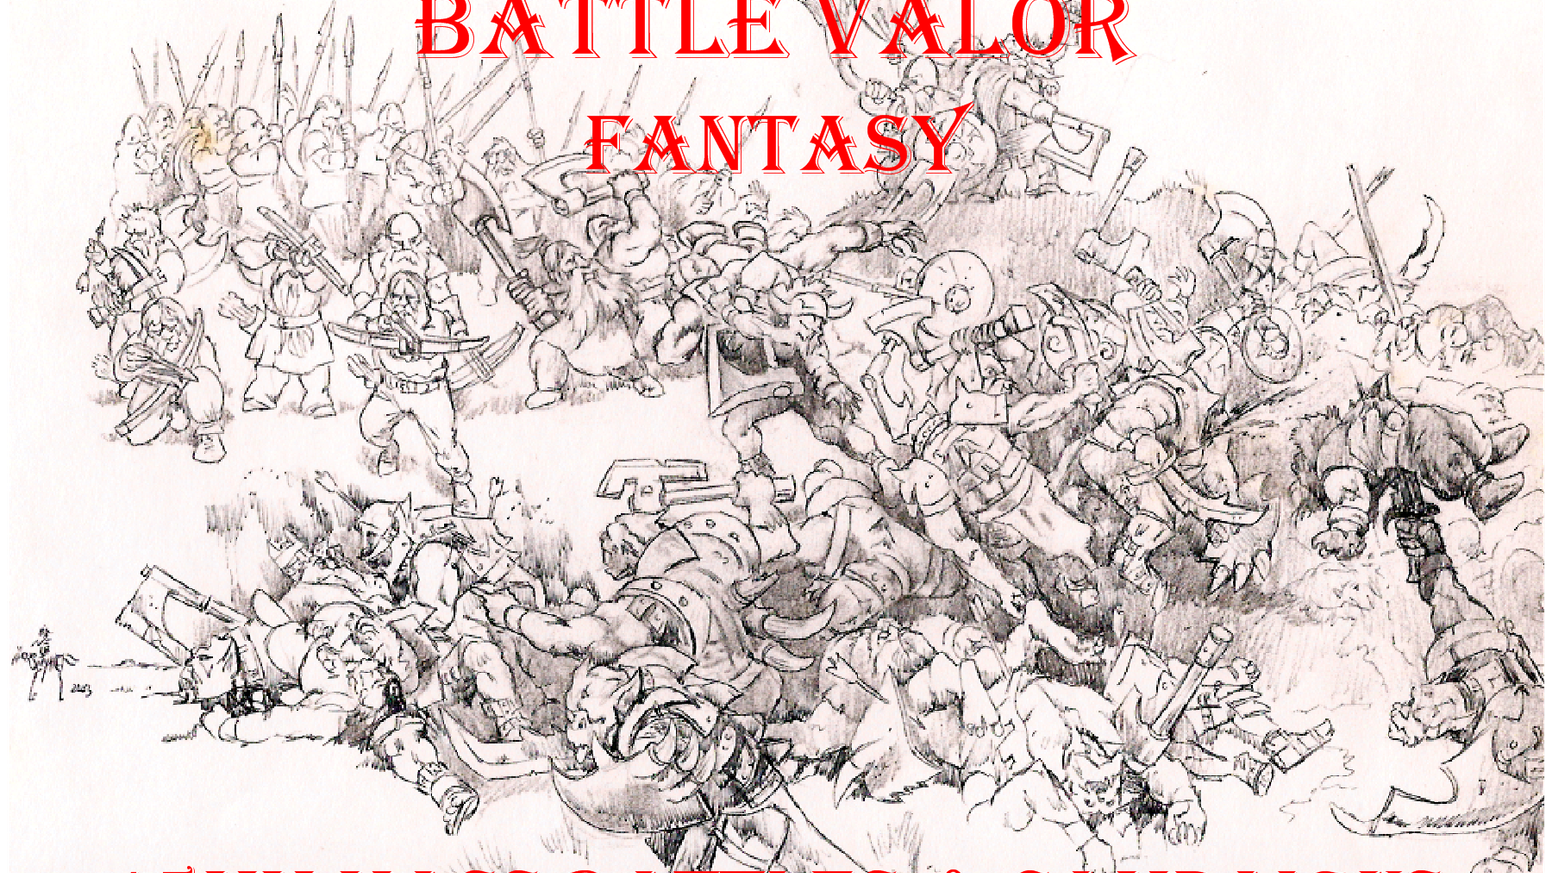 Battle Valor Fantasy 15mm Table Top Wargame by Edward Spettigue